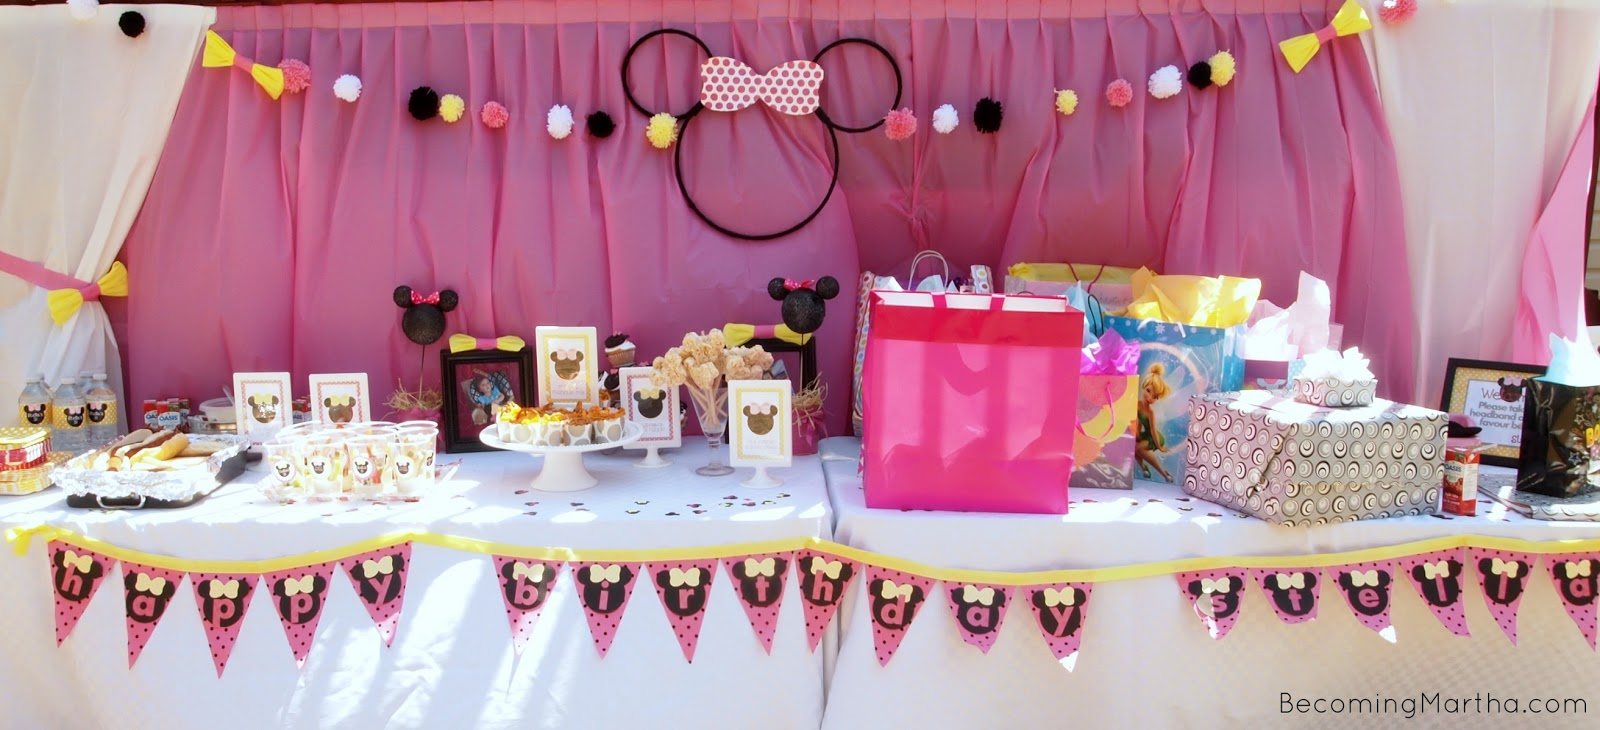 Minnie mouse party decor becoming martha minnie mouse party decor amipublicfo Choice Image